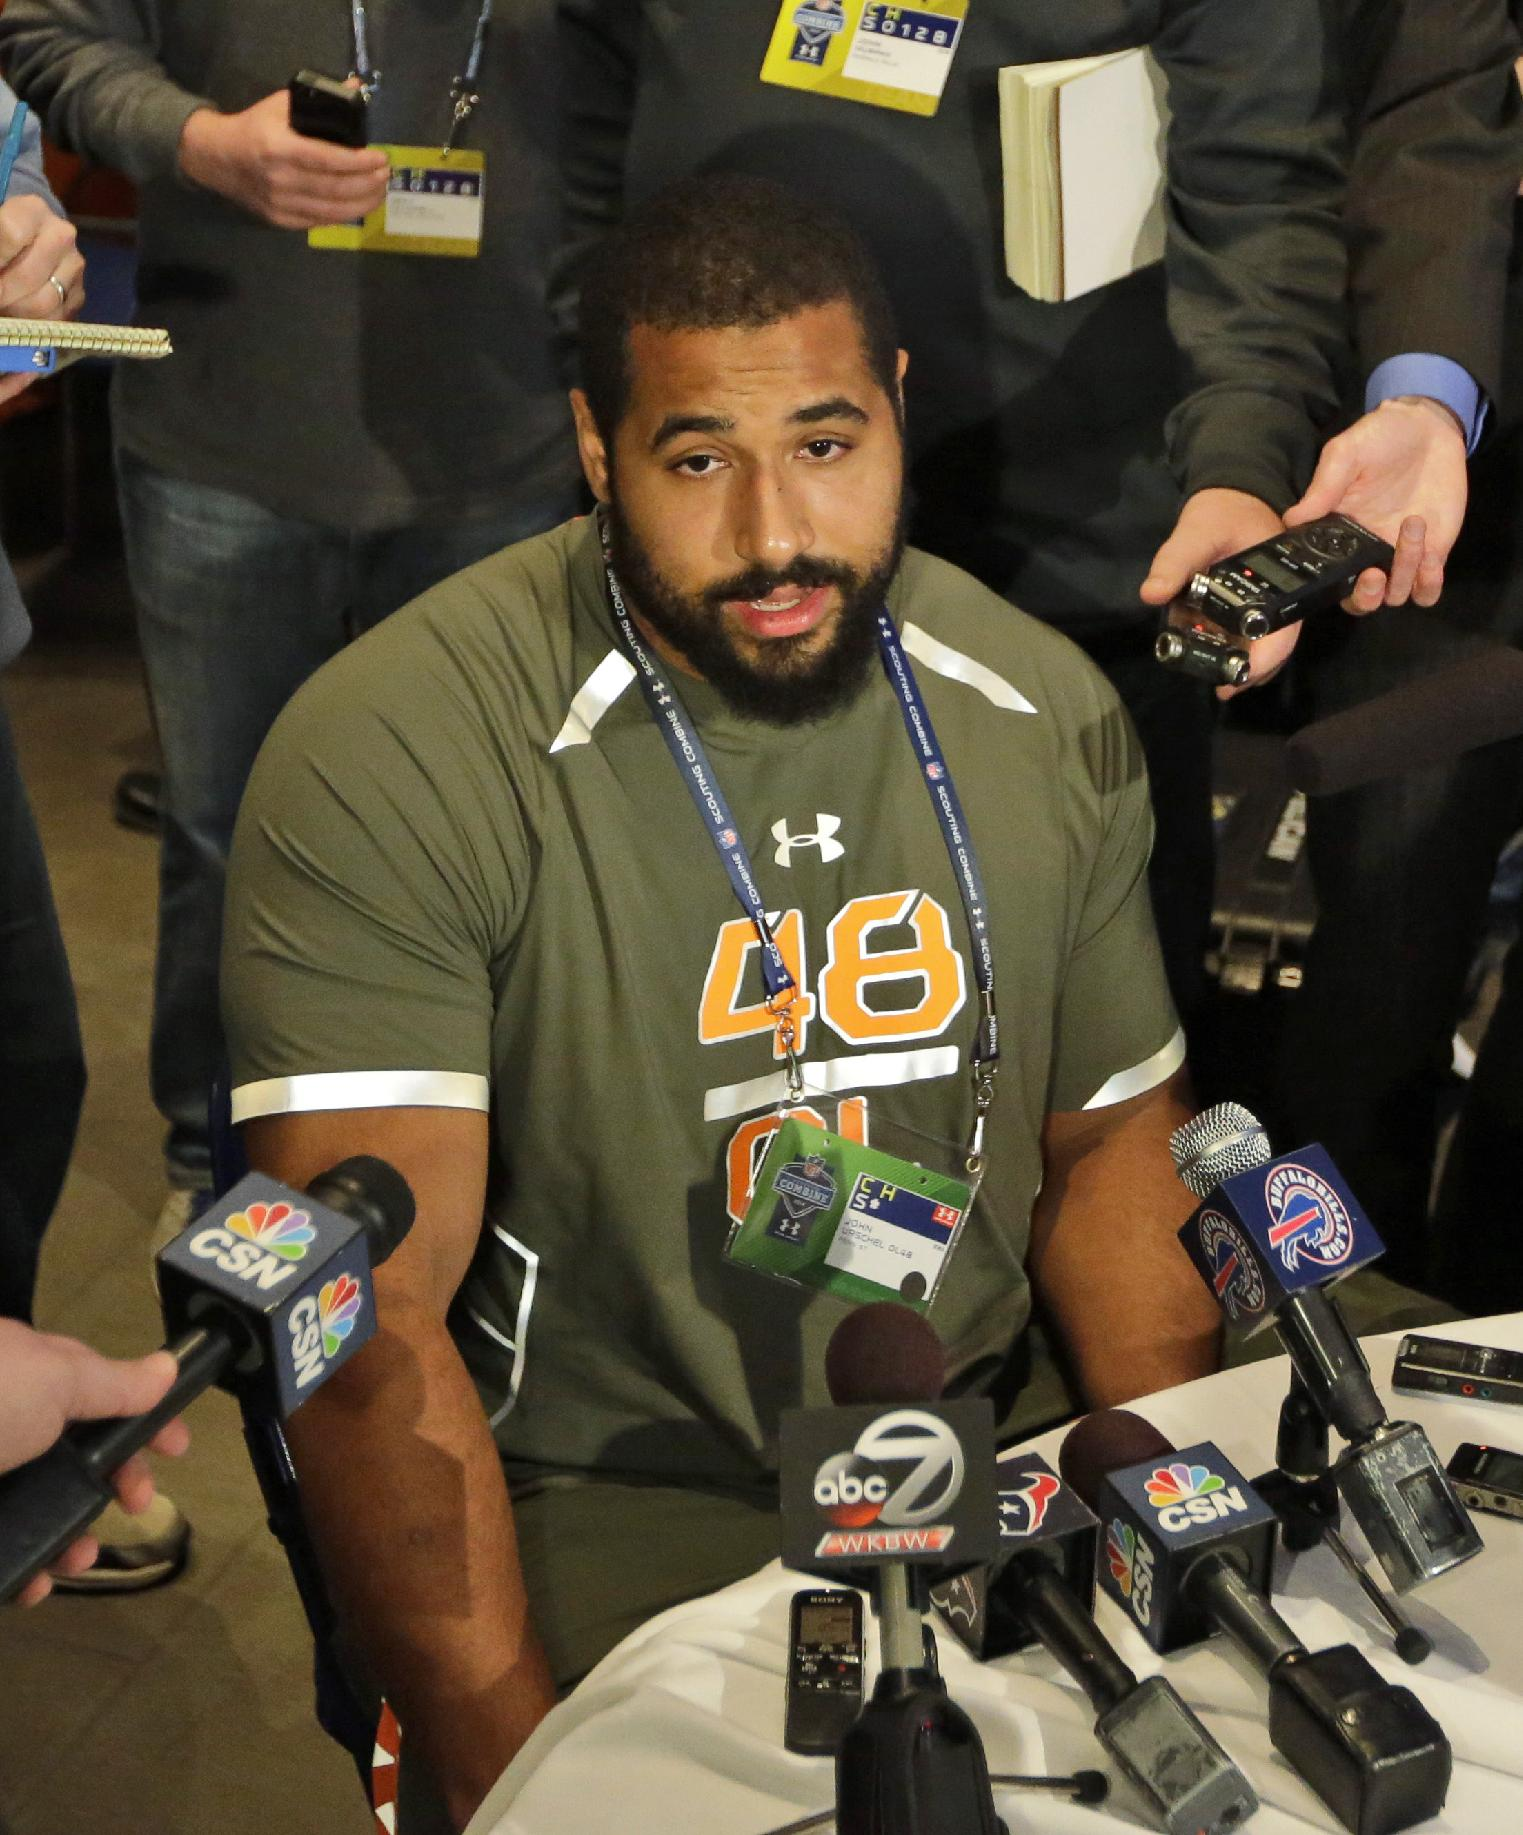 In this Feb. 20, 2014 file photo, Penn State offensive lineman John Urschel answers a question during a news conference at the NFL football scouting combine in Indianapolis. Urschel will routinely provide a look at his journey leading to the NFL draft on May 8 in a series of diary entries